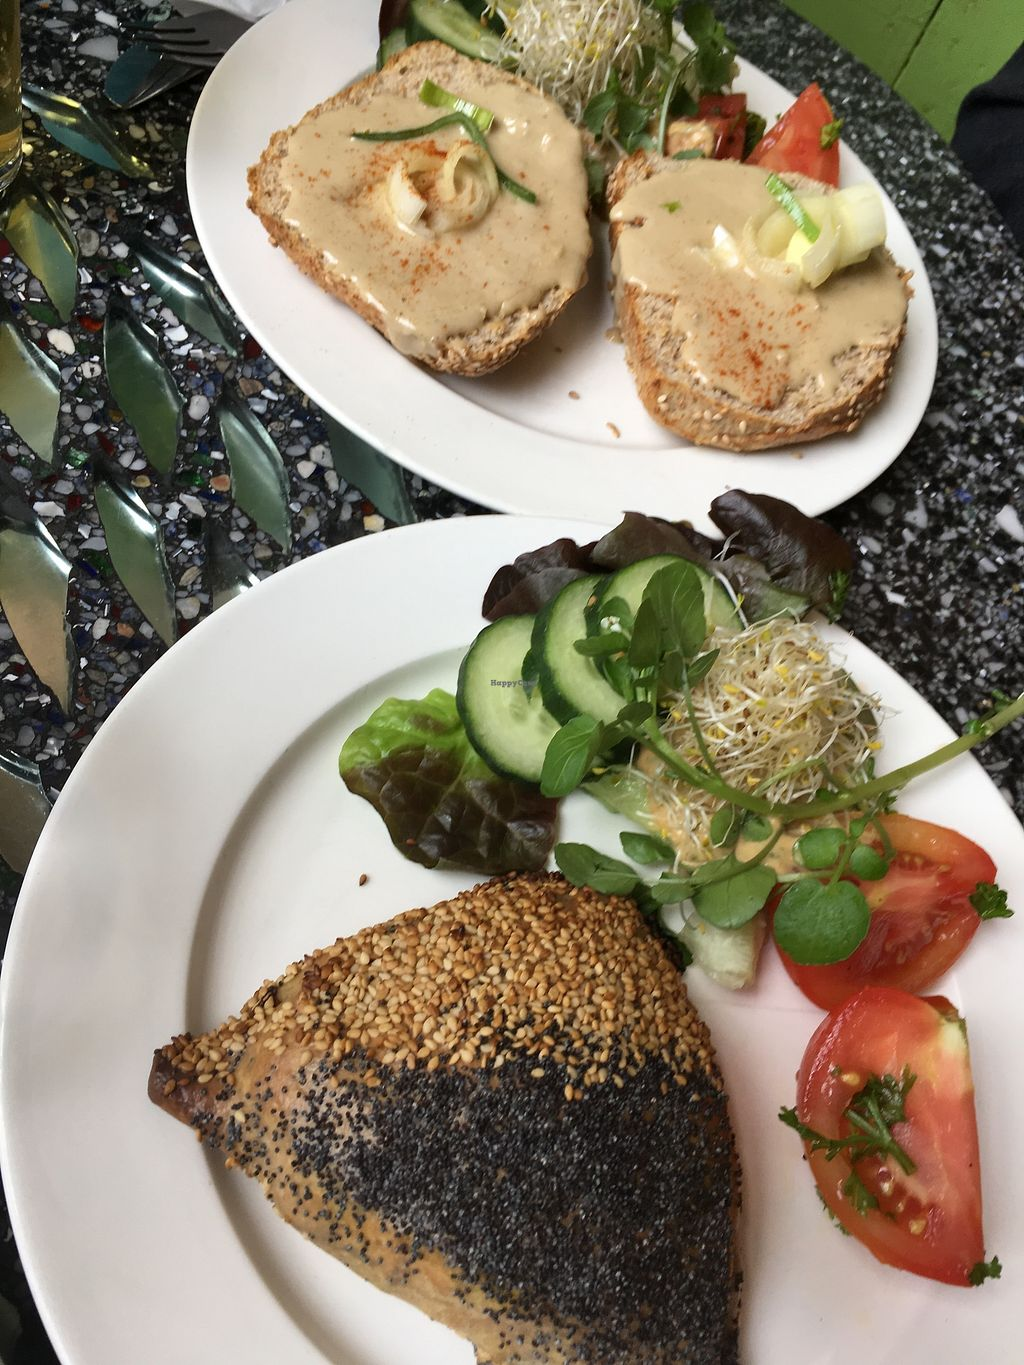 """Photo of Bolhoed  by <a href=""""/members/profile/vegan%20frog"""">vegan frog</a> <br/>Tahini toast and vegan pastry <br/> June 29, 2017  - <a href='/contact/abuse/image/1004/274855'>Report</a>"""